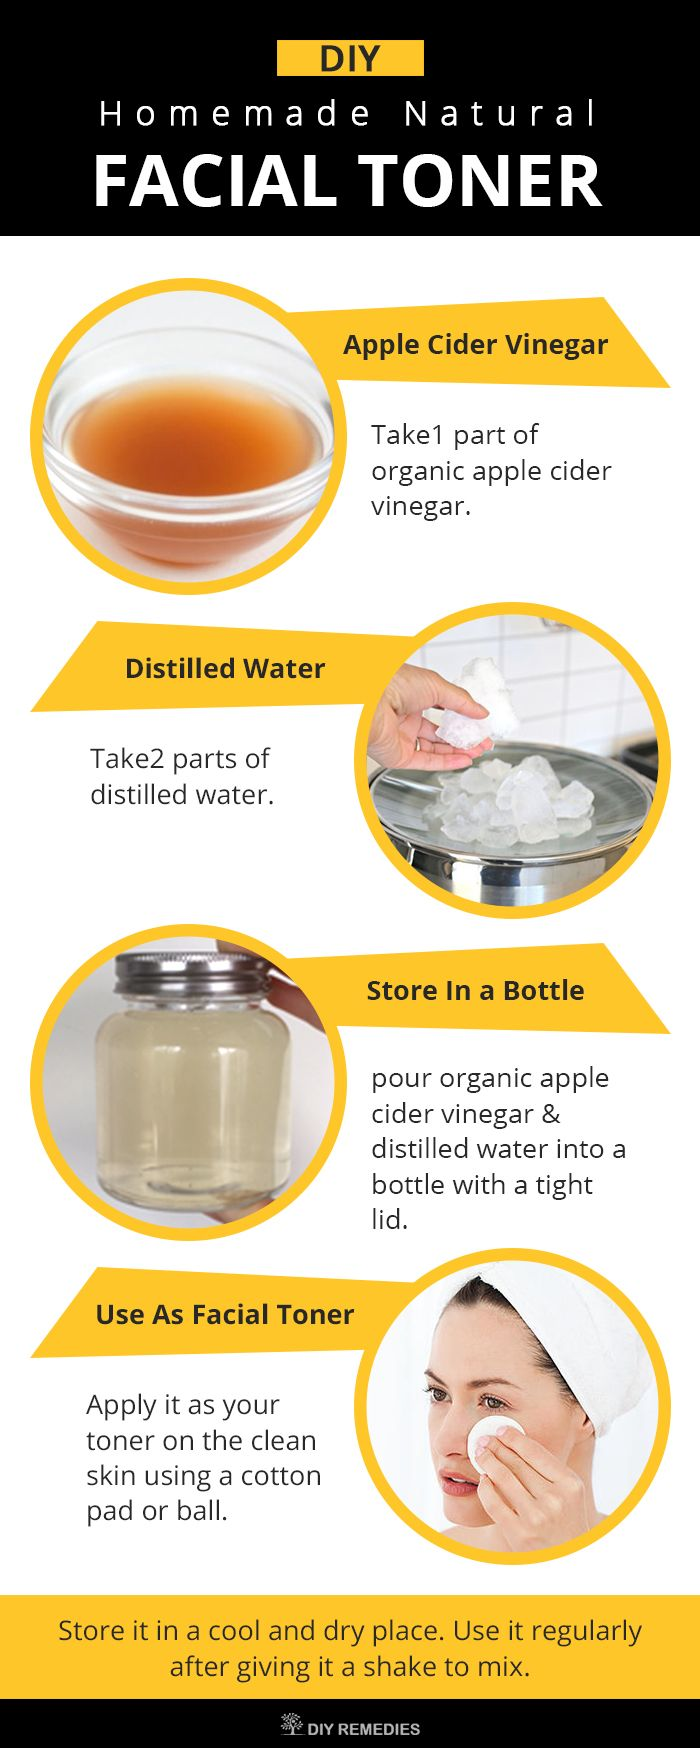 DIY Homemade Natural Facial Toner  Apple cider vinegar is loaded with powerful enzymes, beneficial acids and nutrients that are essential for skin care. It has antimicrobial, antioxidant and antiseptic properties that deal with skin infections and makes it problem free. #FacialToner #Natural #Homemade